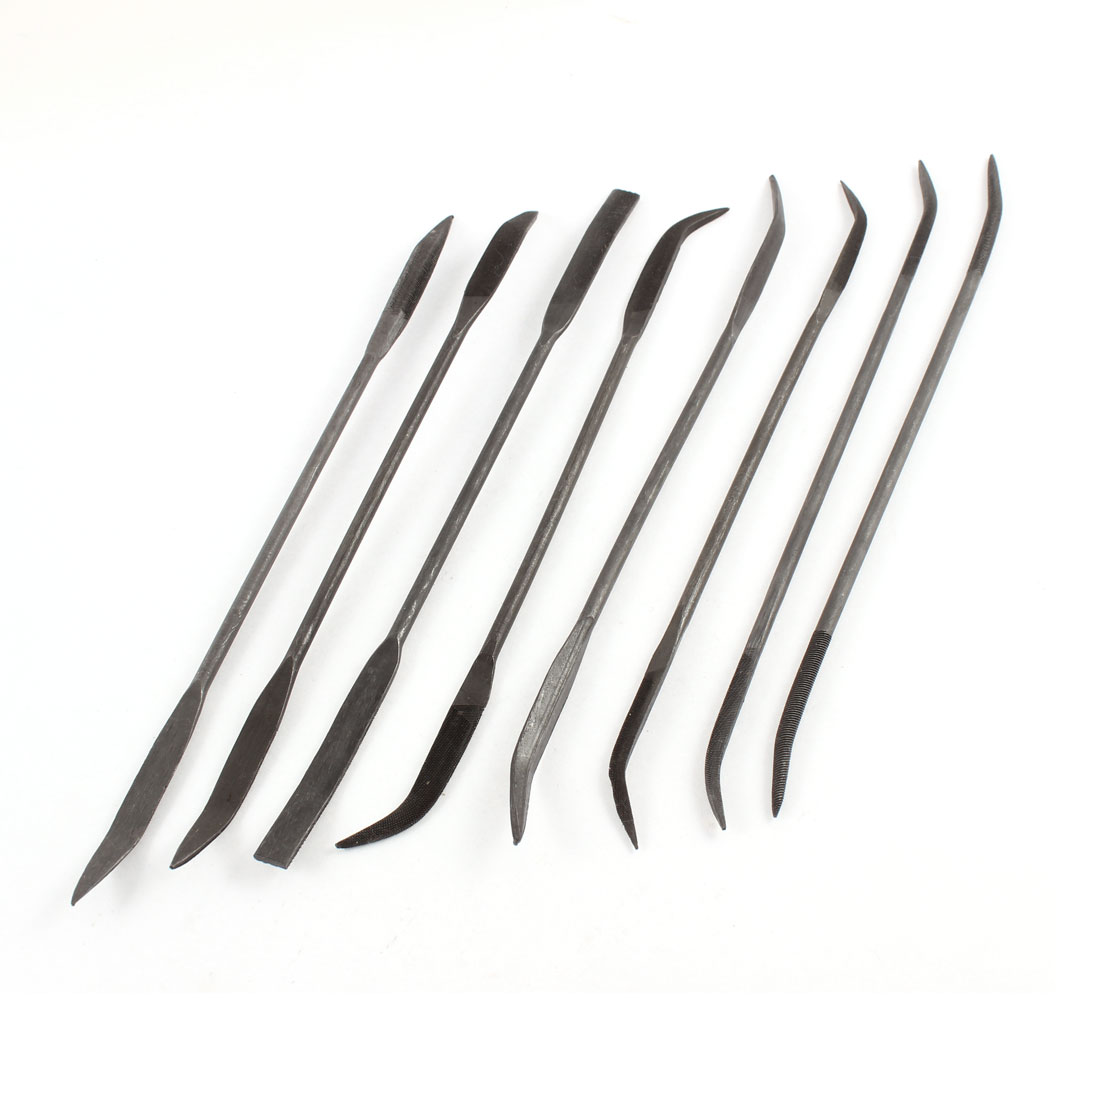 8 Pcs Double Heads Triangle Round Woodworking Hand Tool Flat Needle File Set